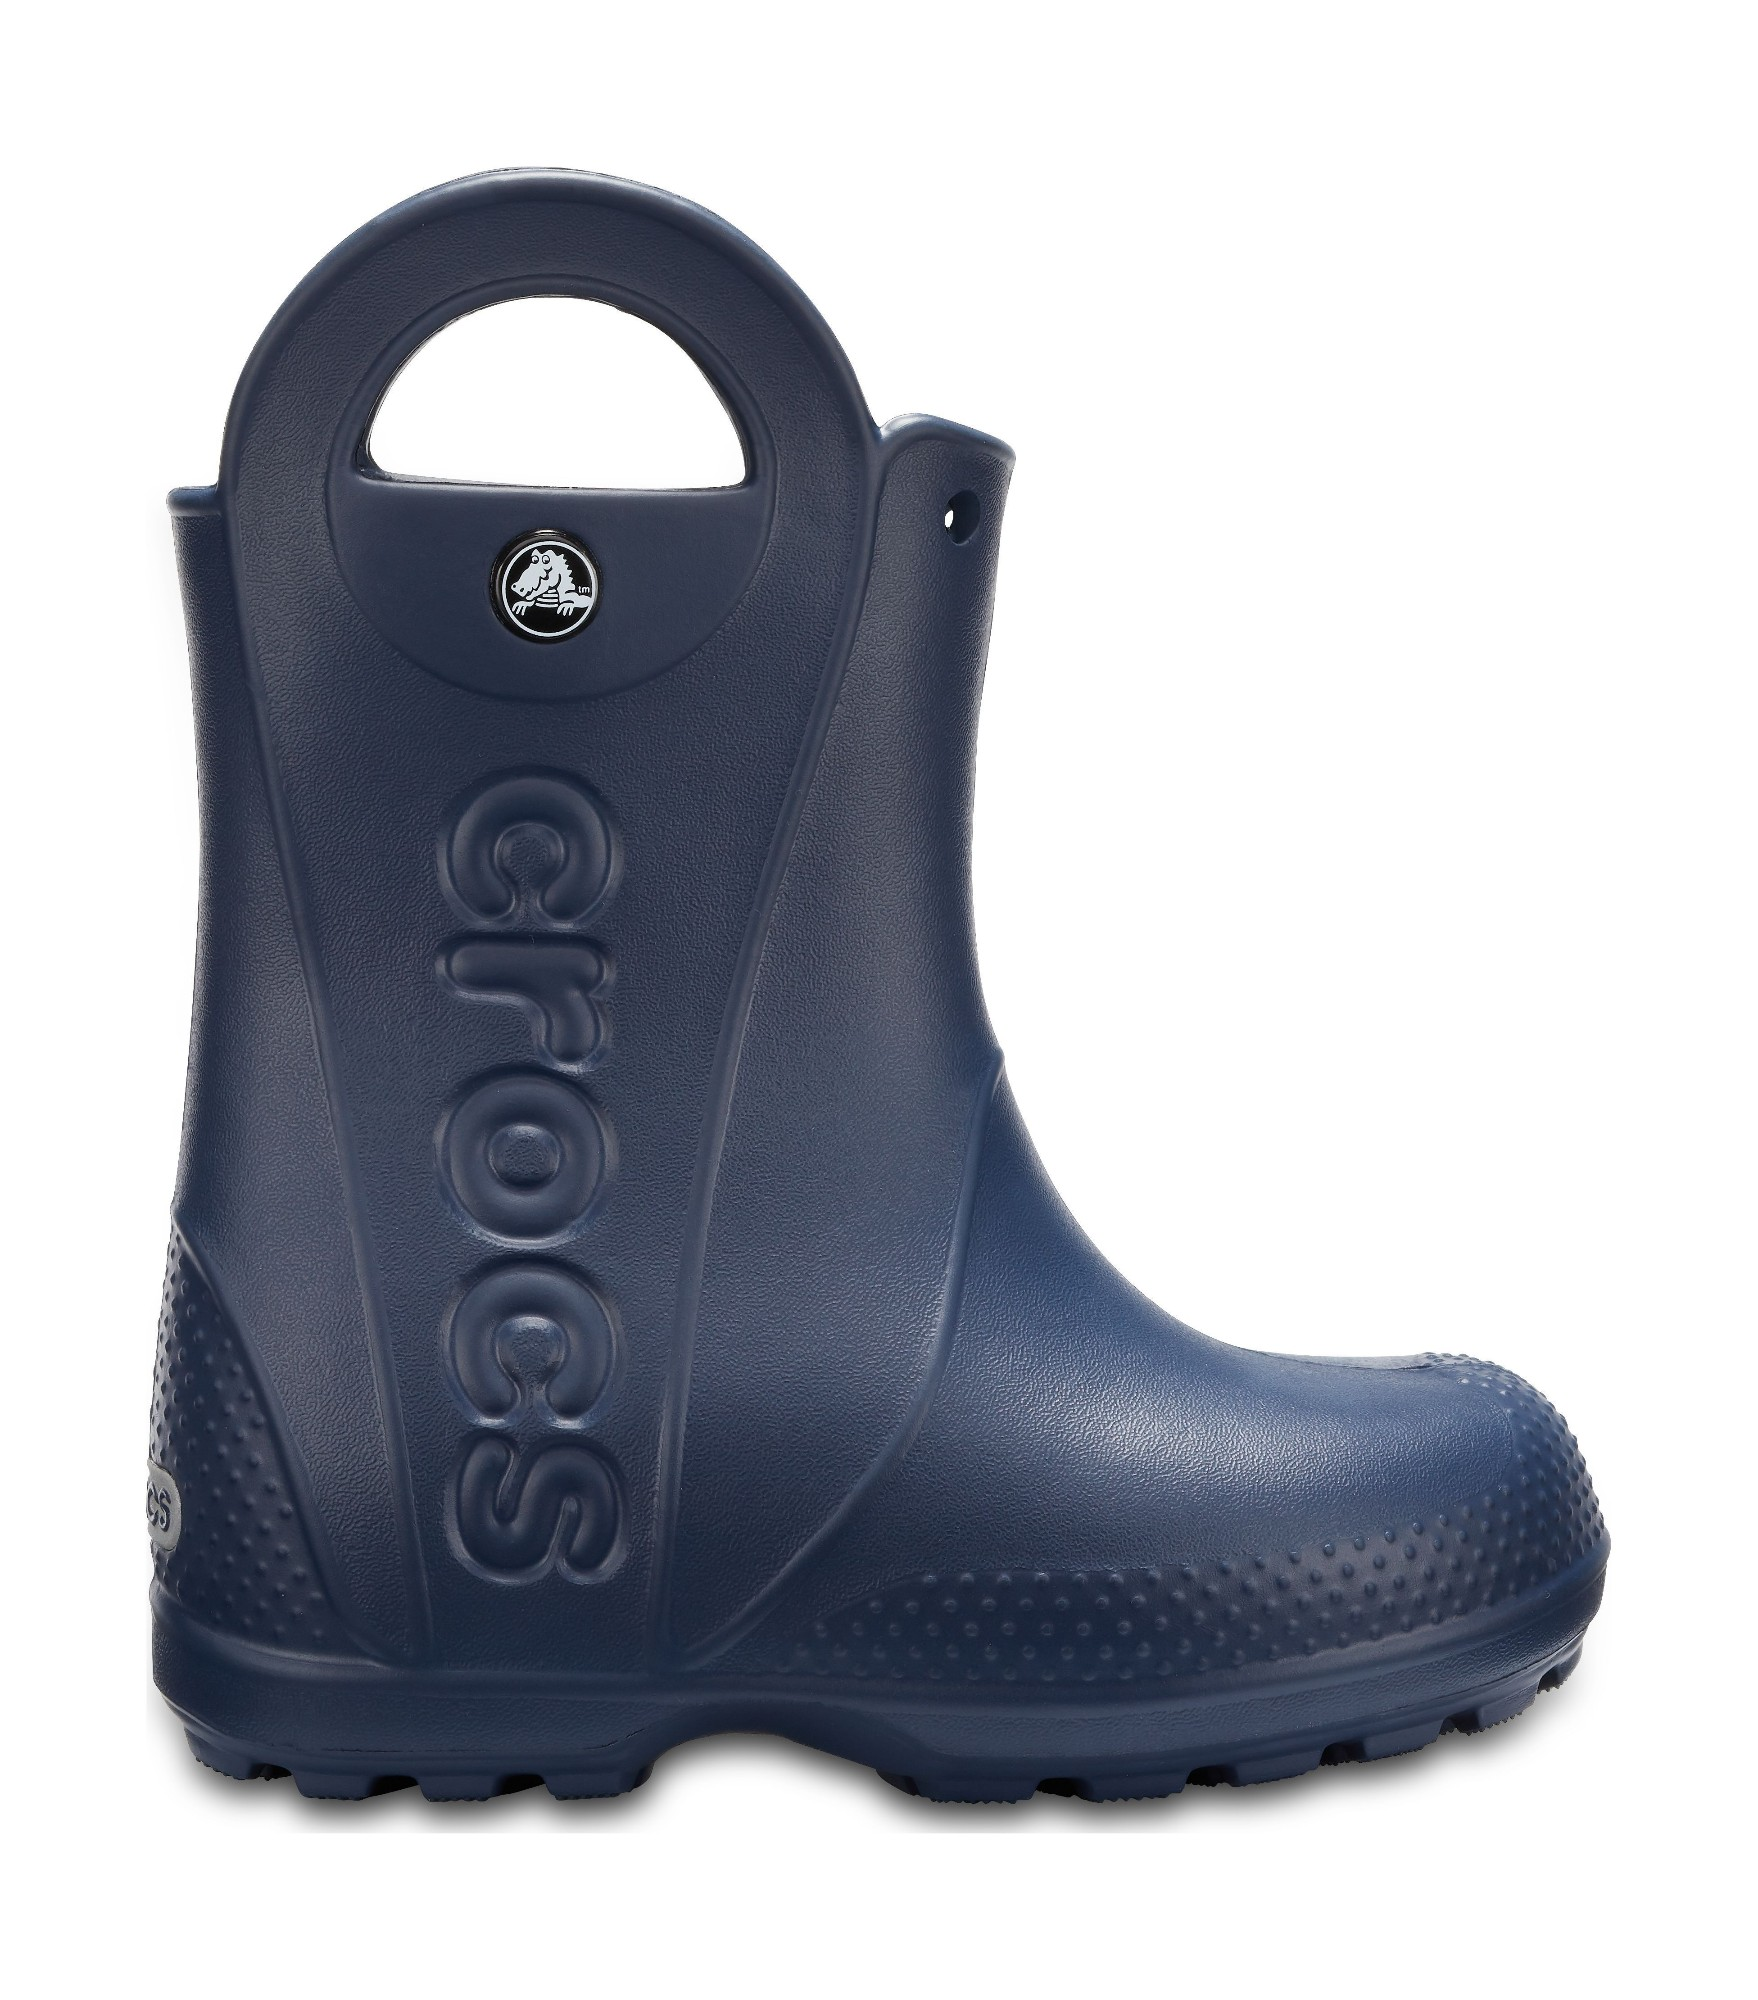 Crocs™ Kids' Handle It Rain Boot Navy 24